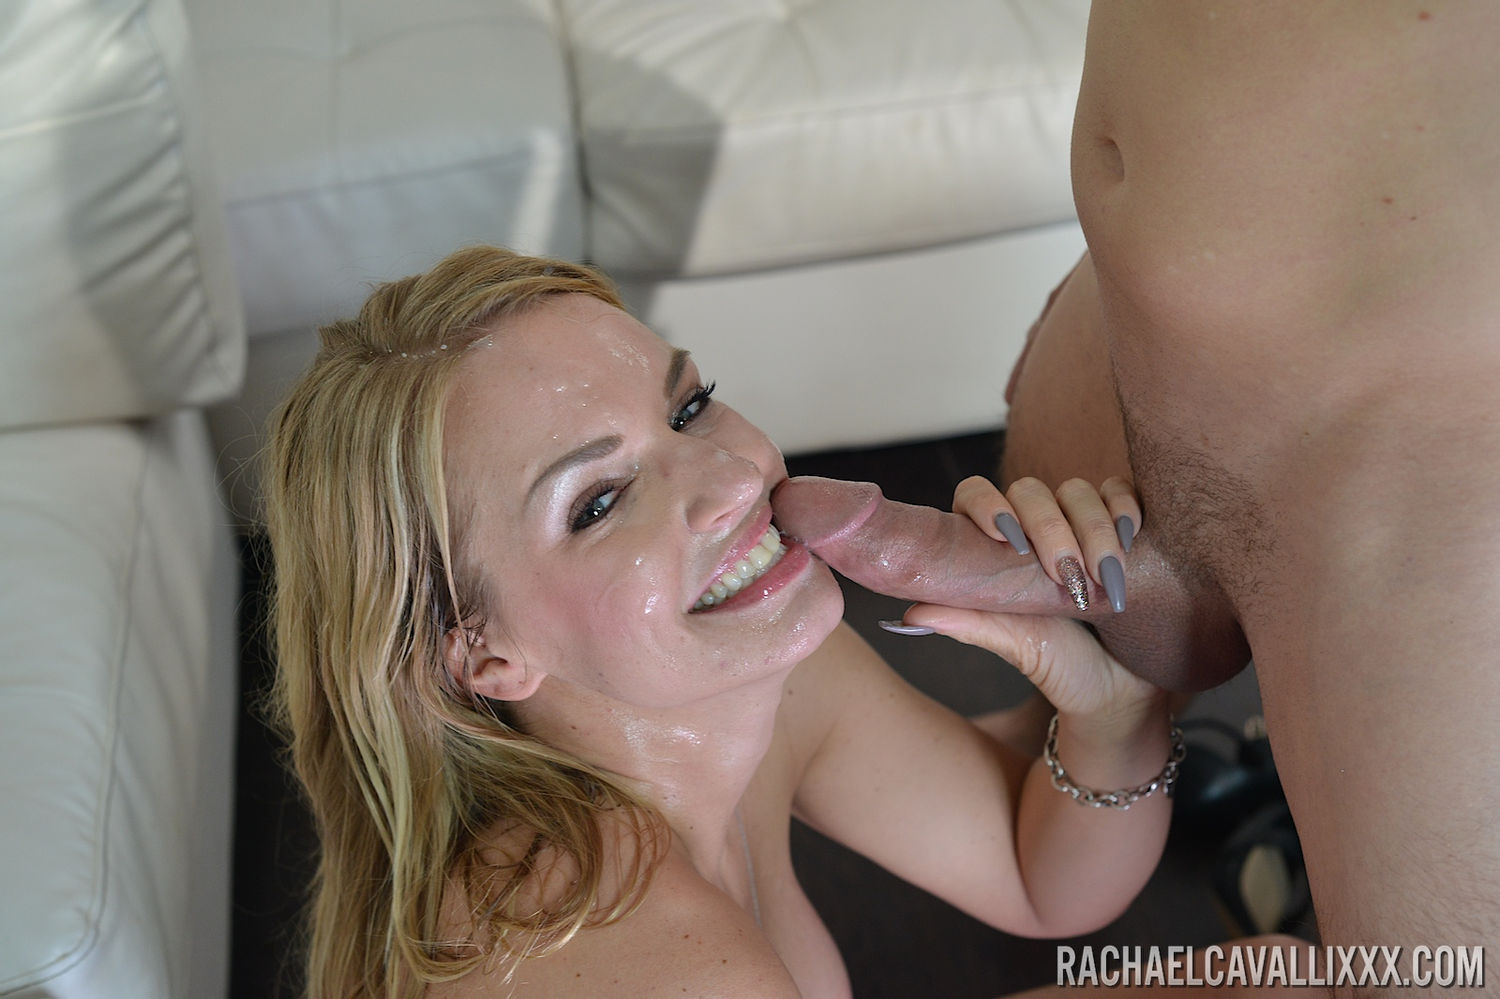 Busty milf pornstar Rachael Cavalli with big tits gives blowjob and gets cumshot in free Pornsta ...